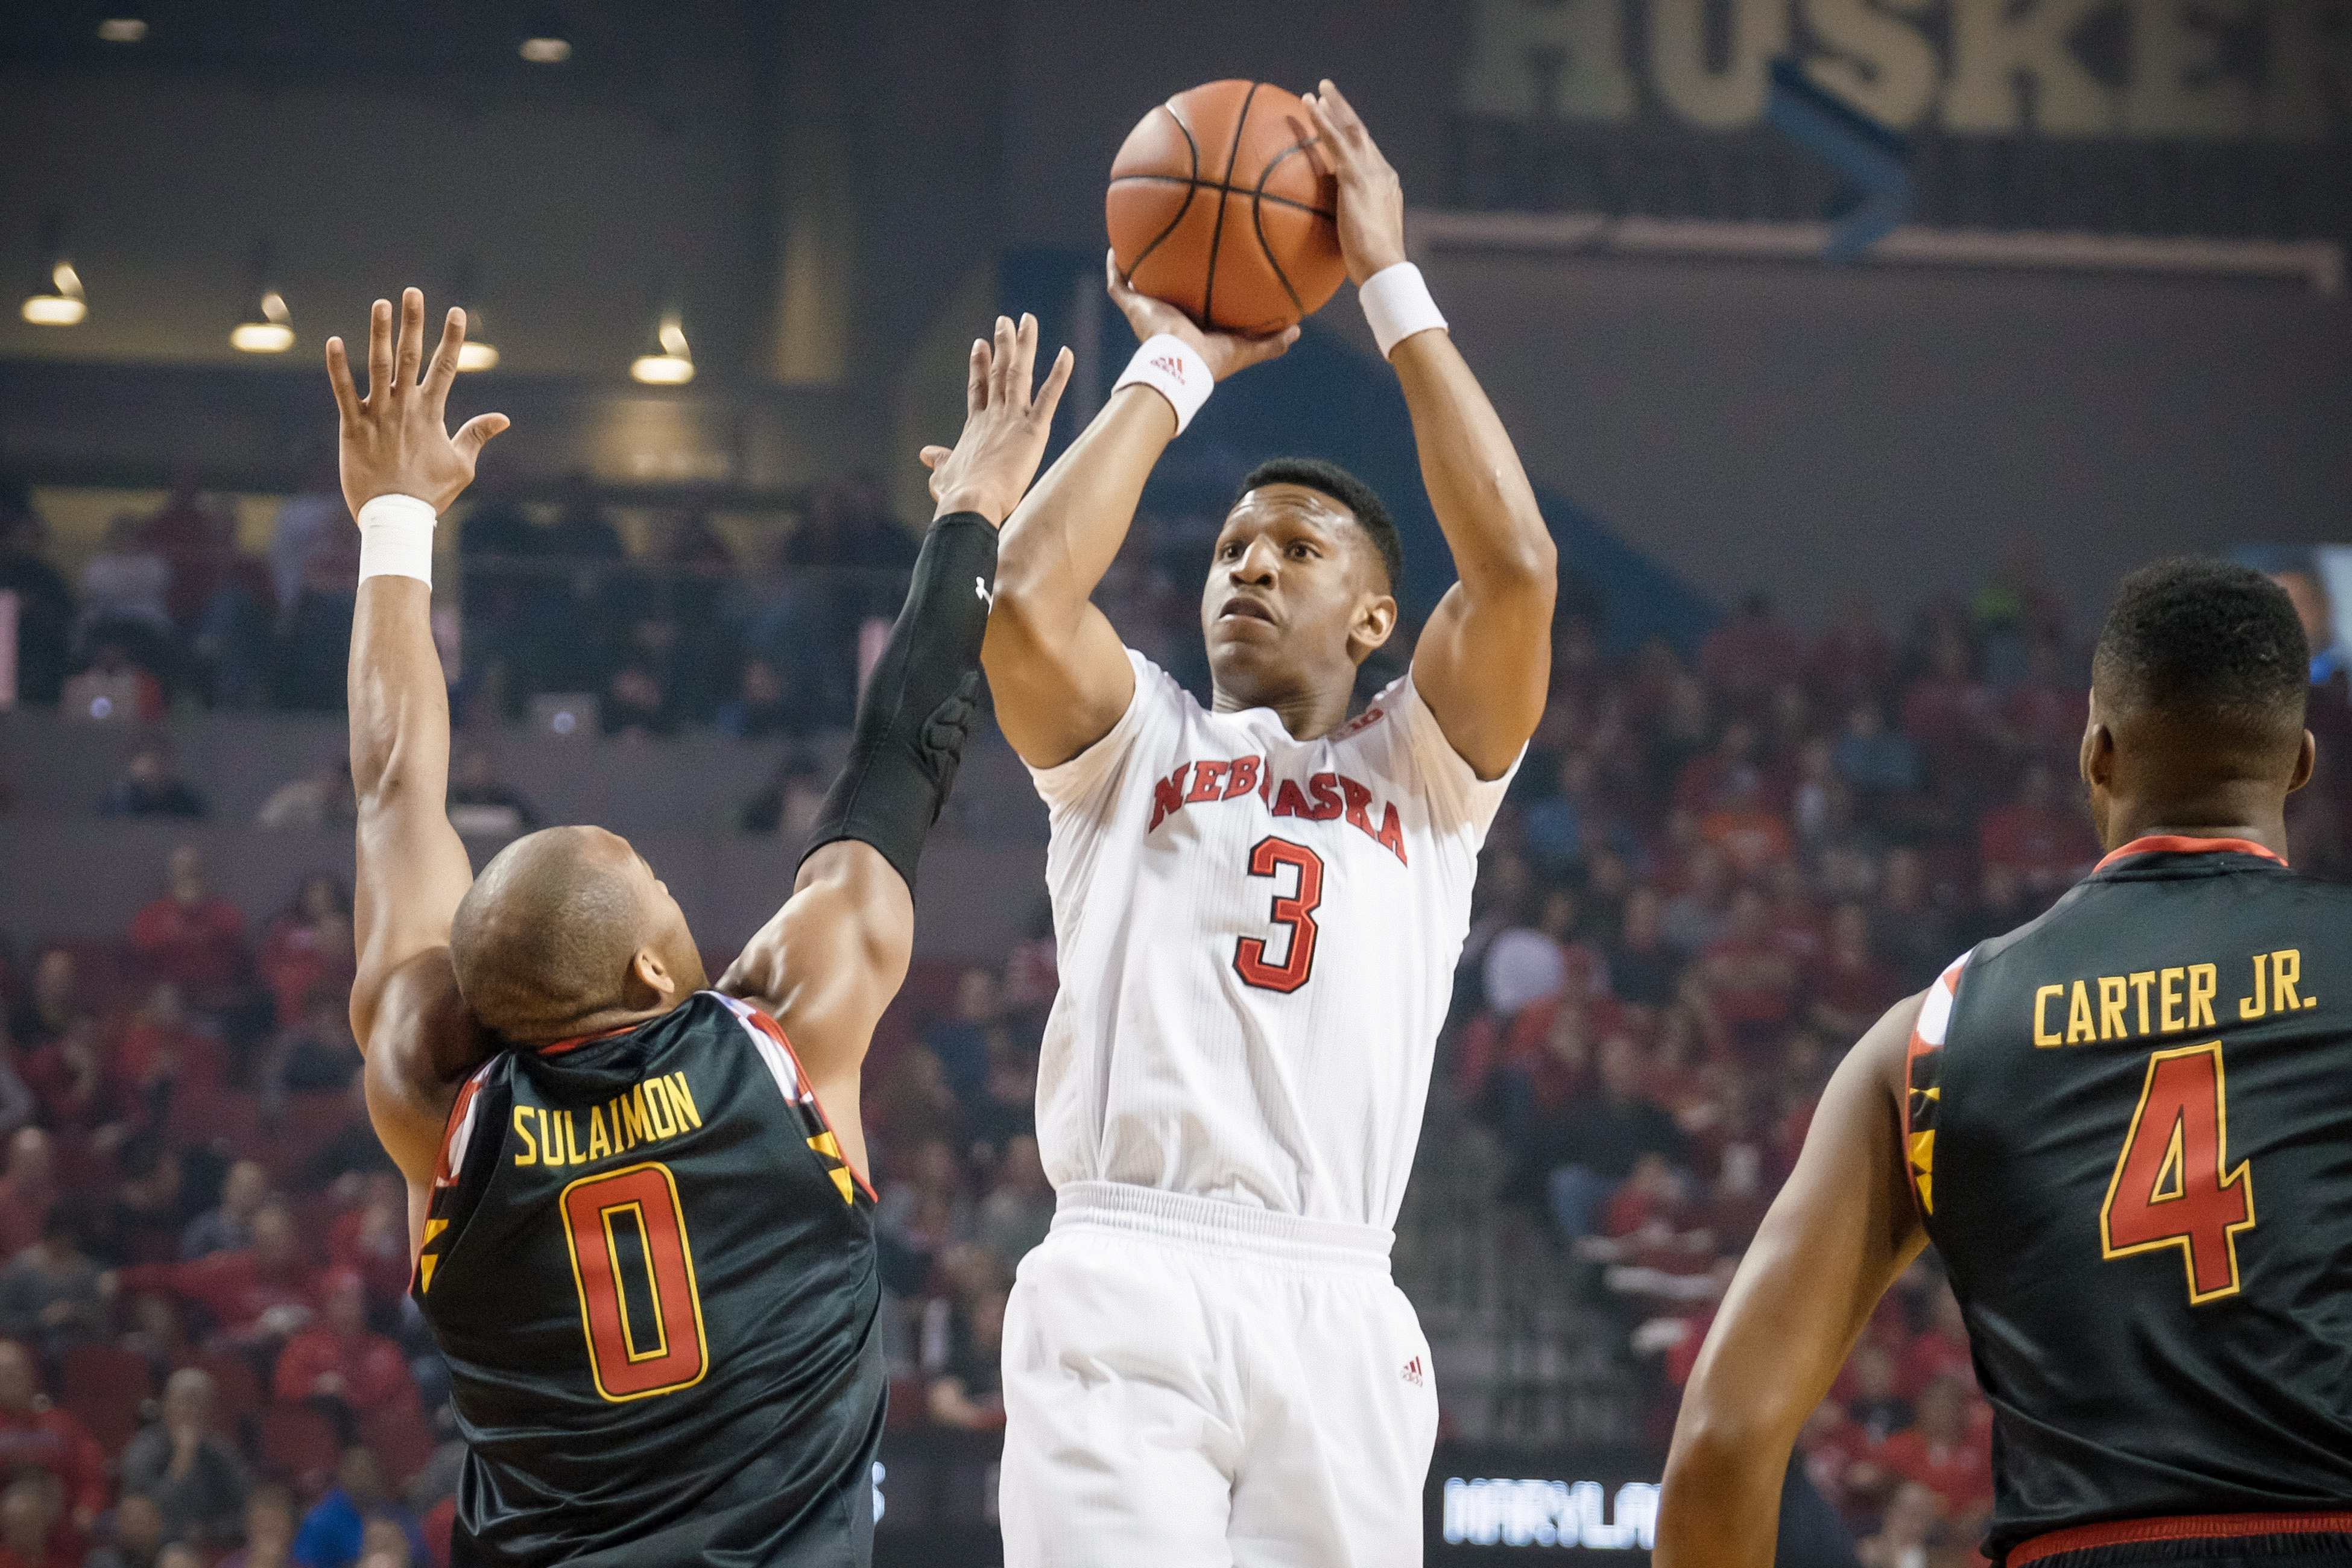 LINCOLN, NE - FEBRUARY 3: Andrew White #3 of the Nebraska Cornhuskers shoots the ball over Rasheed Sulaimon #0 of the Maryland Terrapins during their game at Pinnacle Bank Arena on February 3, 2016 in Omaha, Nebraska. (Photo by Eric Francis/Getty Images)